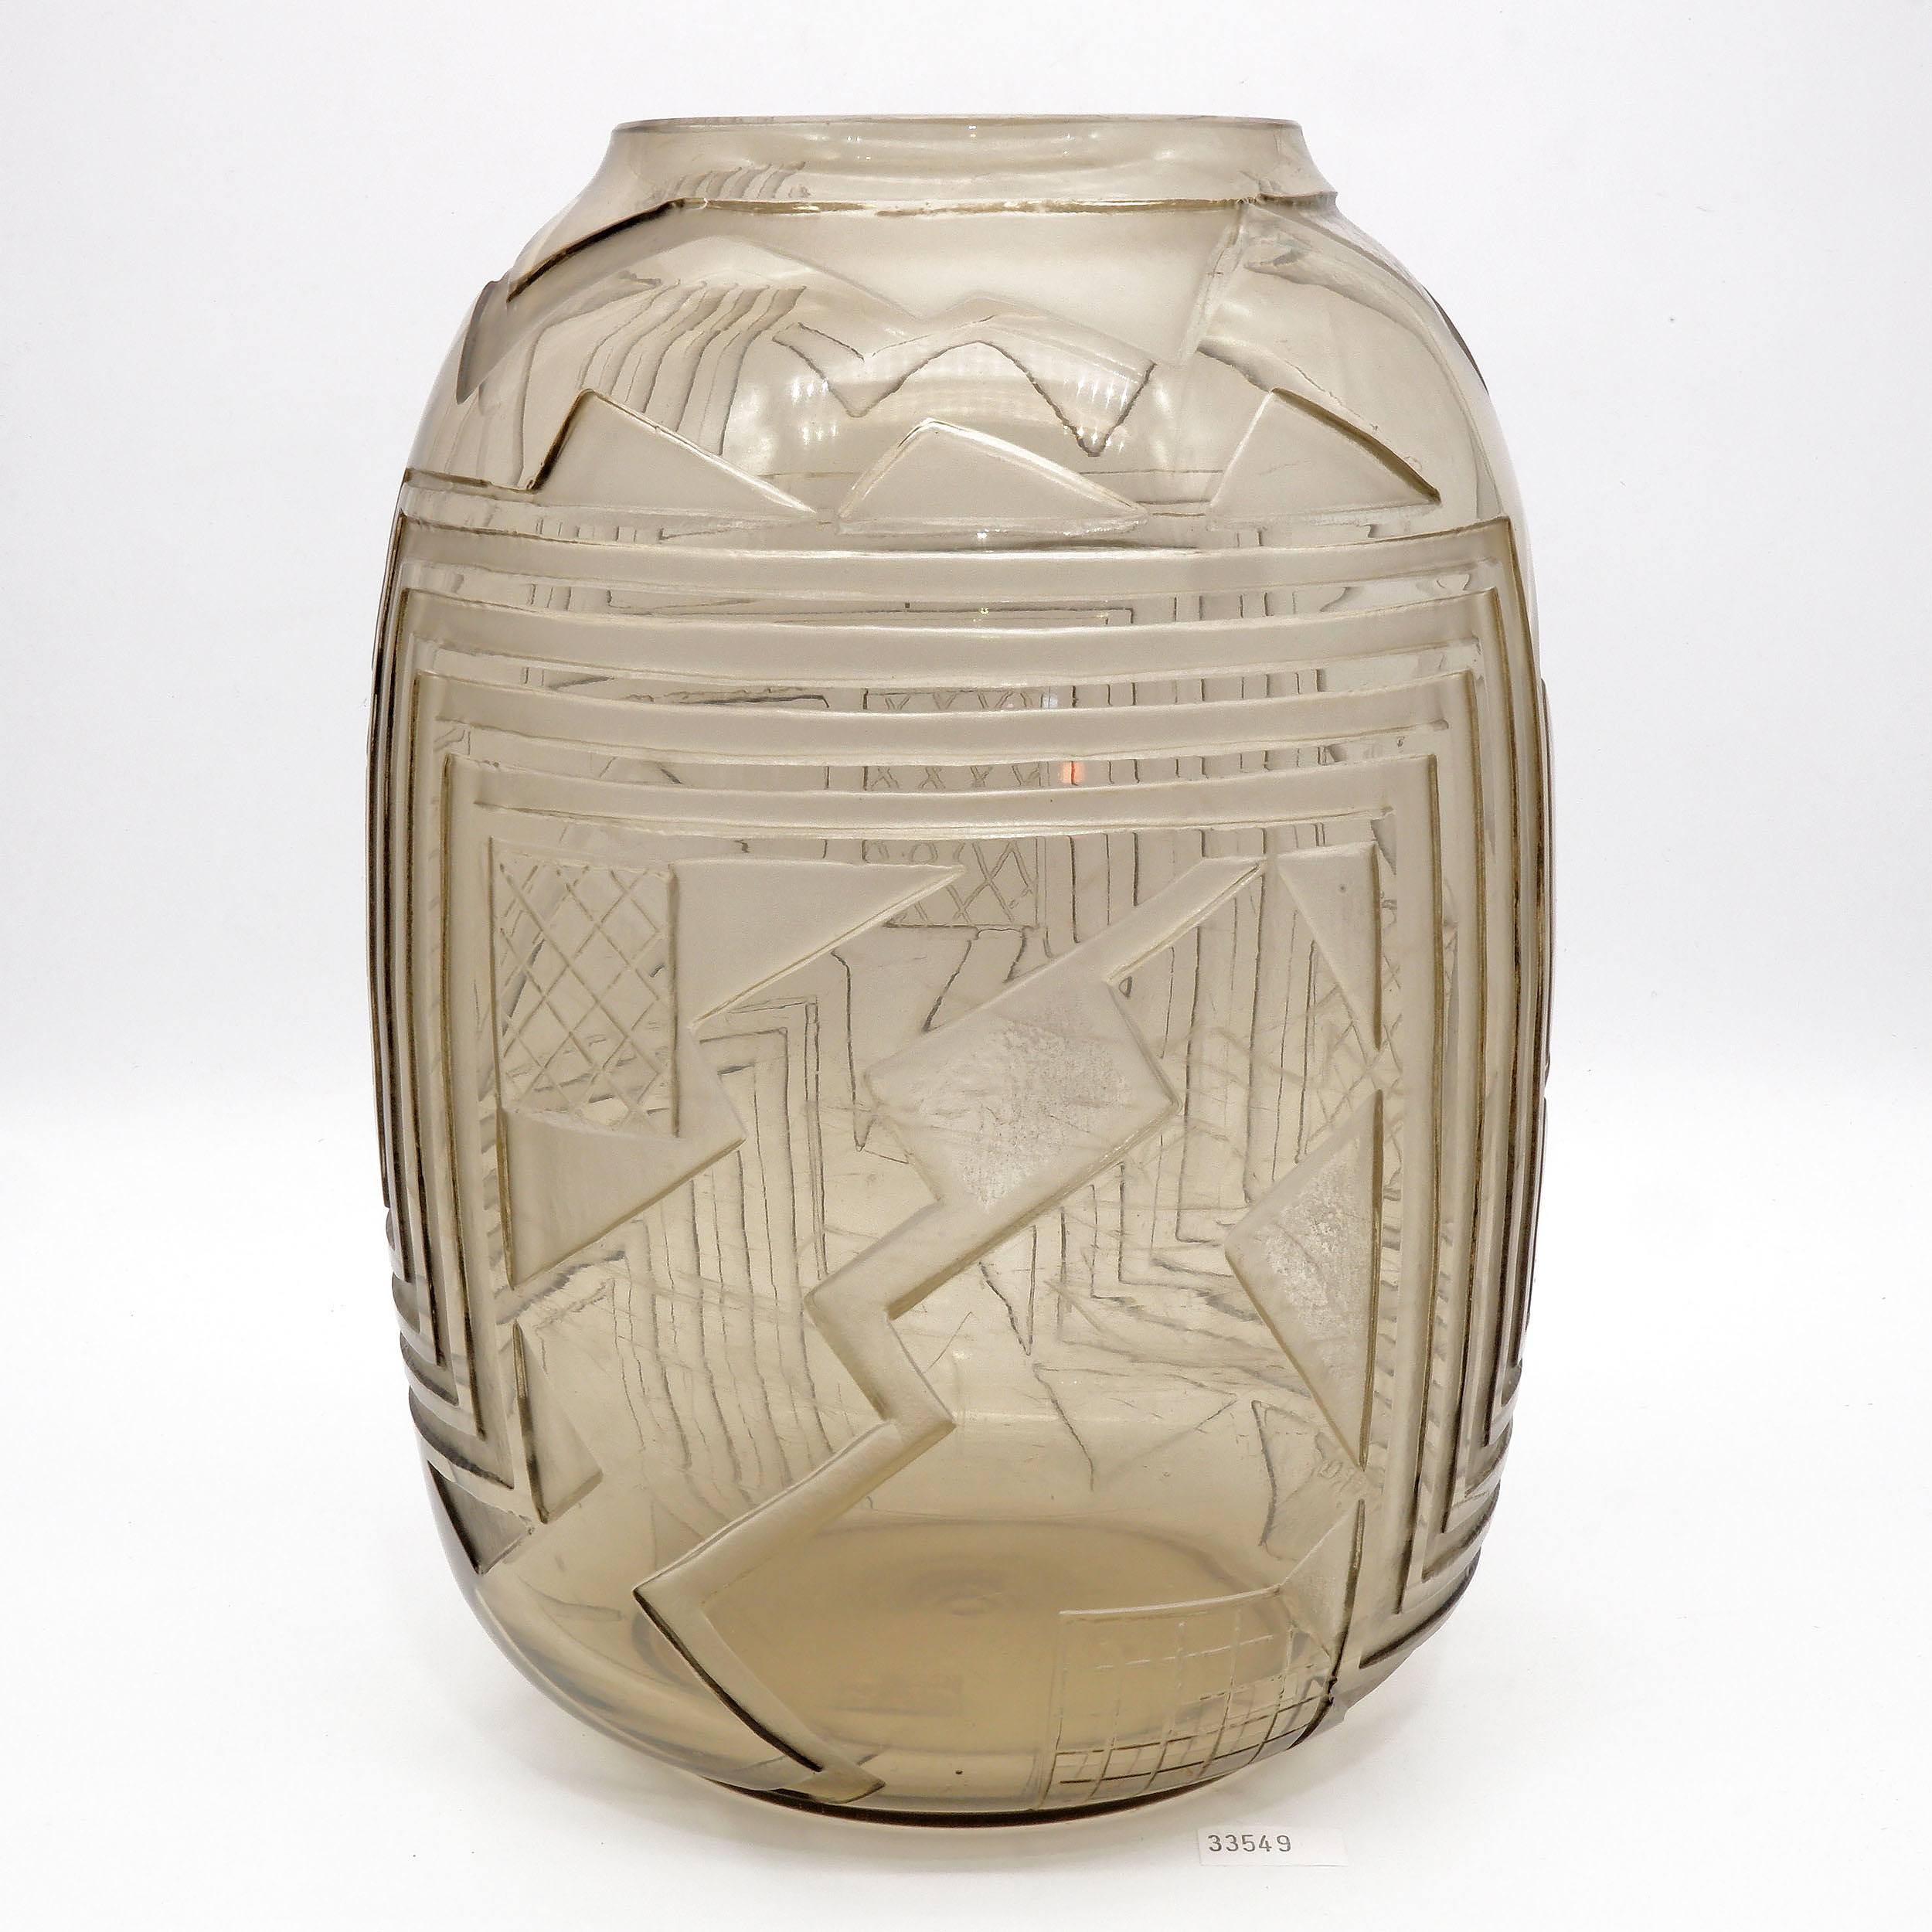 'Signed Art Deco Glass Vase with Deeply Acid Cut Geometric Designs Circa 1920s'